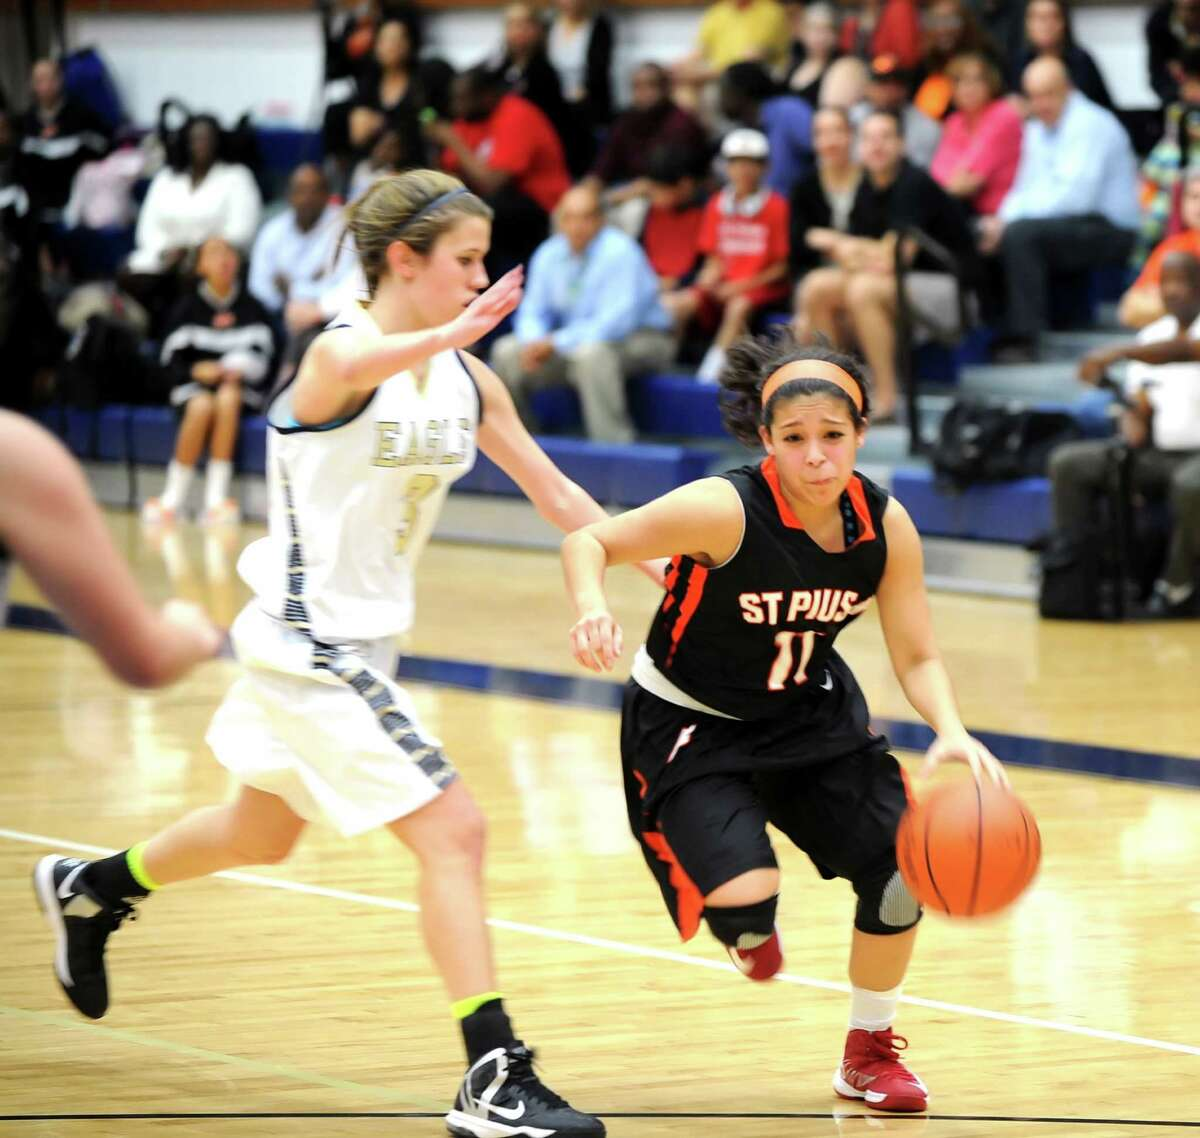 St. Pius visited second Baptist High School for a girls basketball game. Second Baptist won the game, 52-48. Right, Scarlet Rodriguez (11) of St. Pius, drives toward the basket and is being guarded by Second Baptist's Michelle Howard (3).